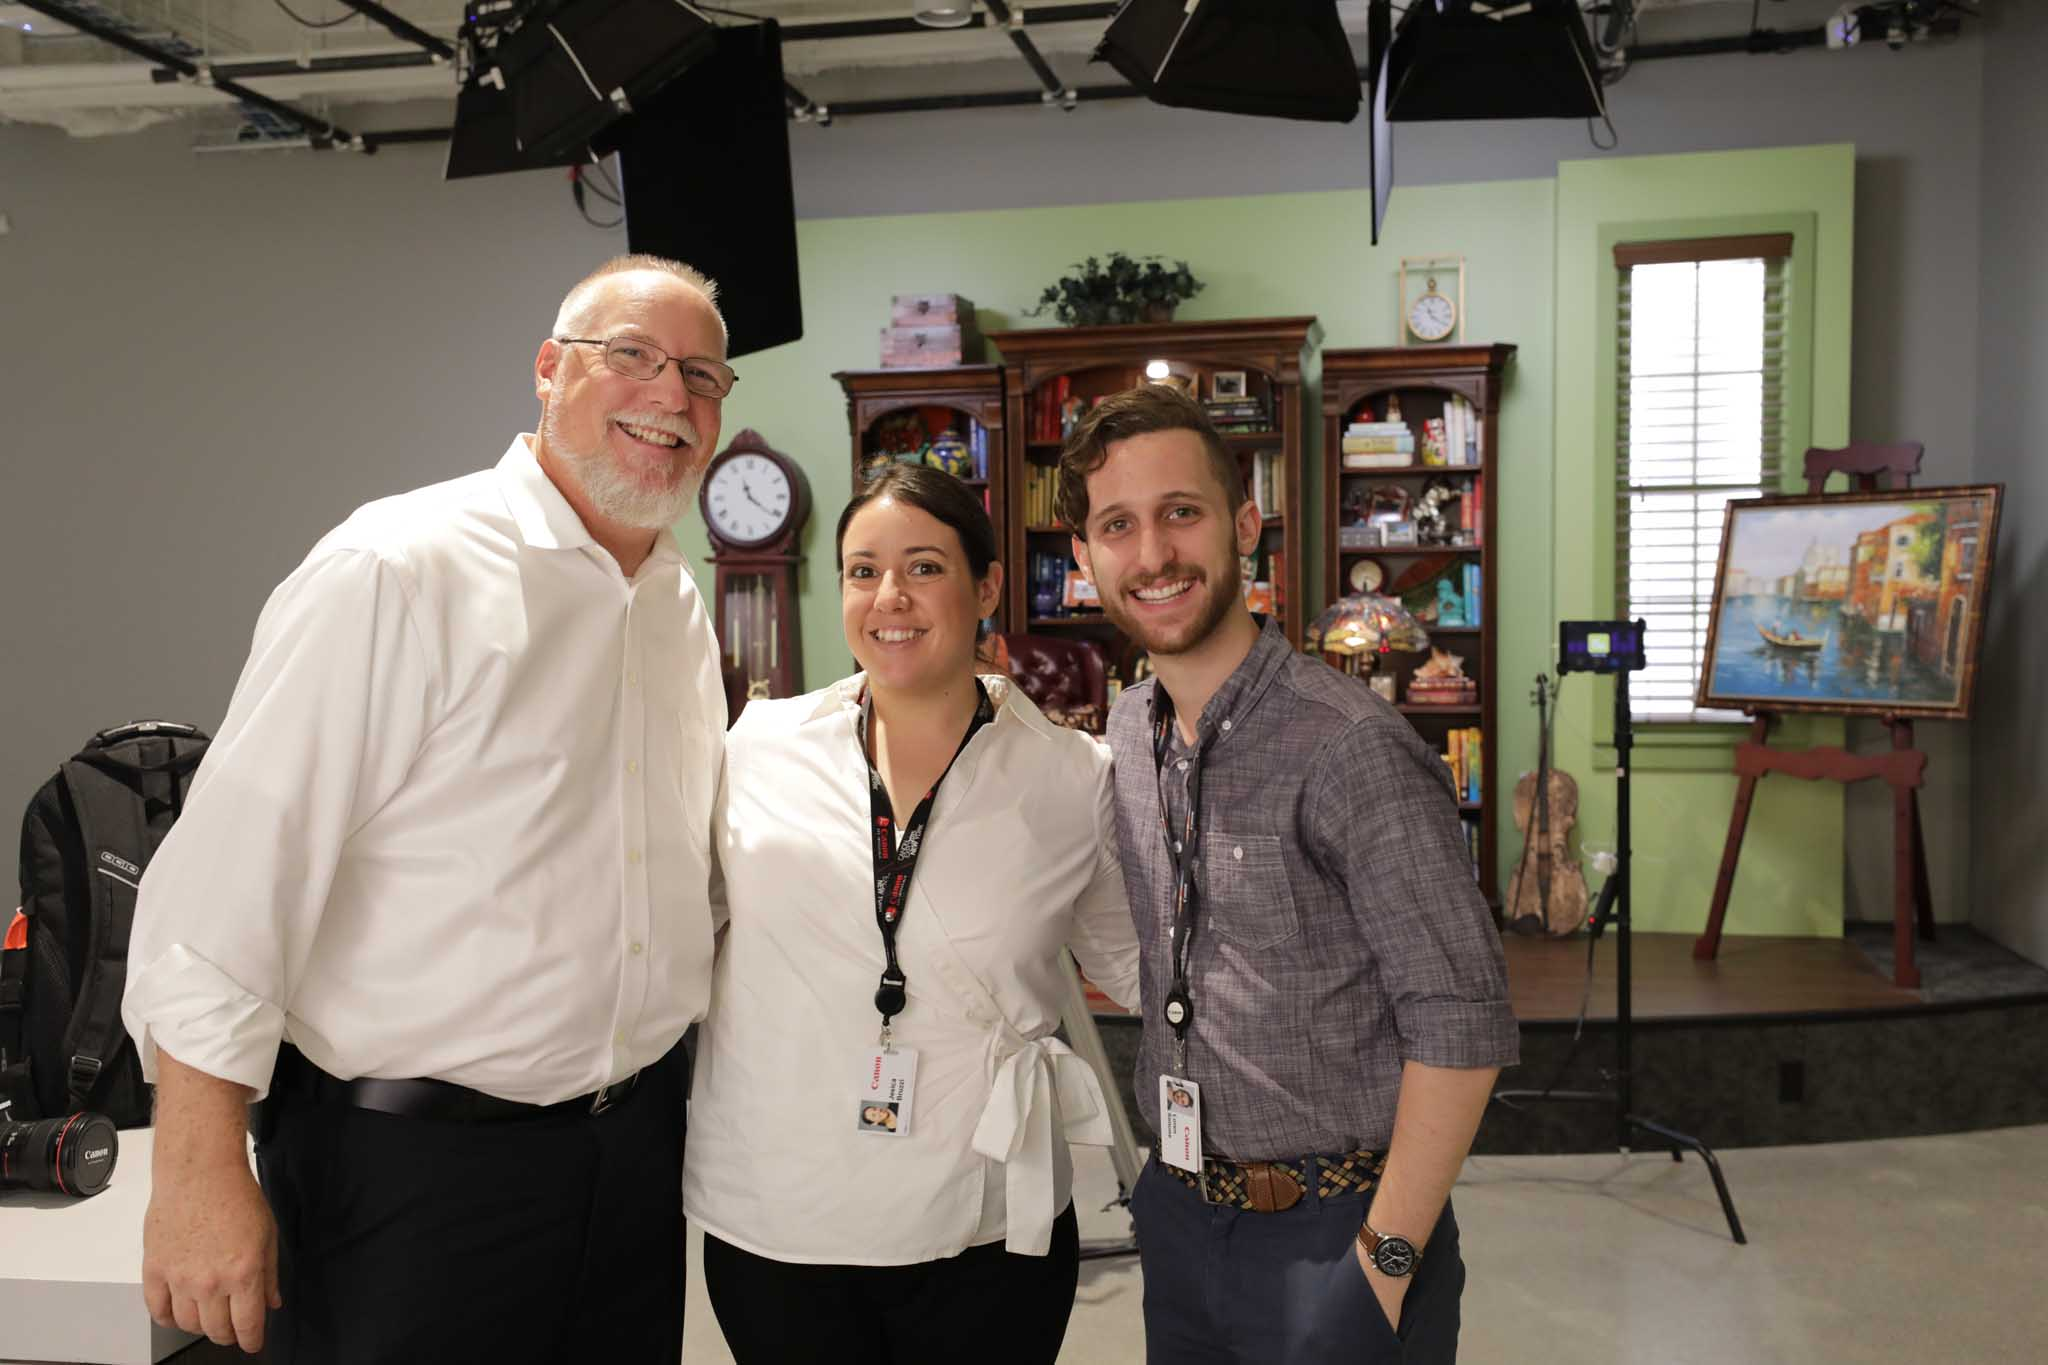 Scott Heath (Rancho PR for Canon), Jesica L Bruzzi (Manager Marketing), Loren Simons (Canon Senior Engineer).